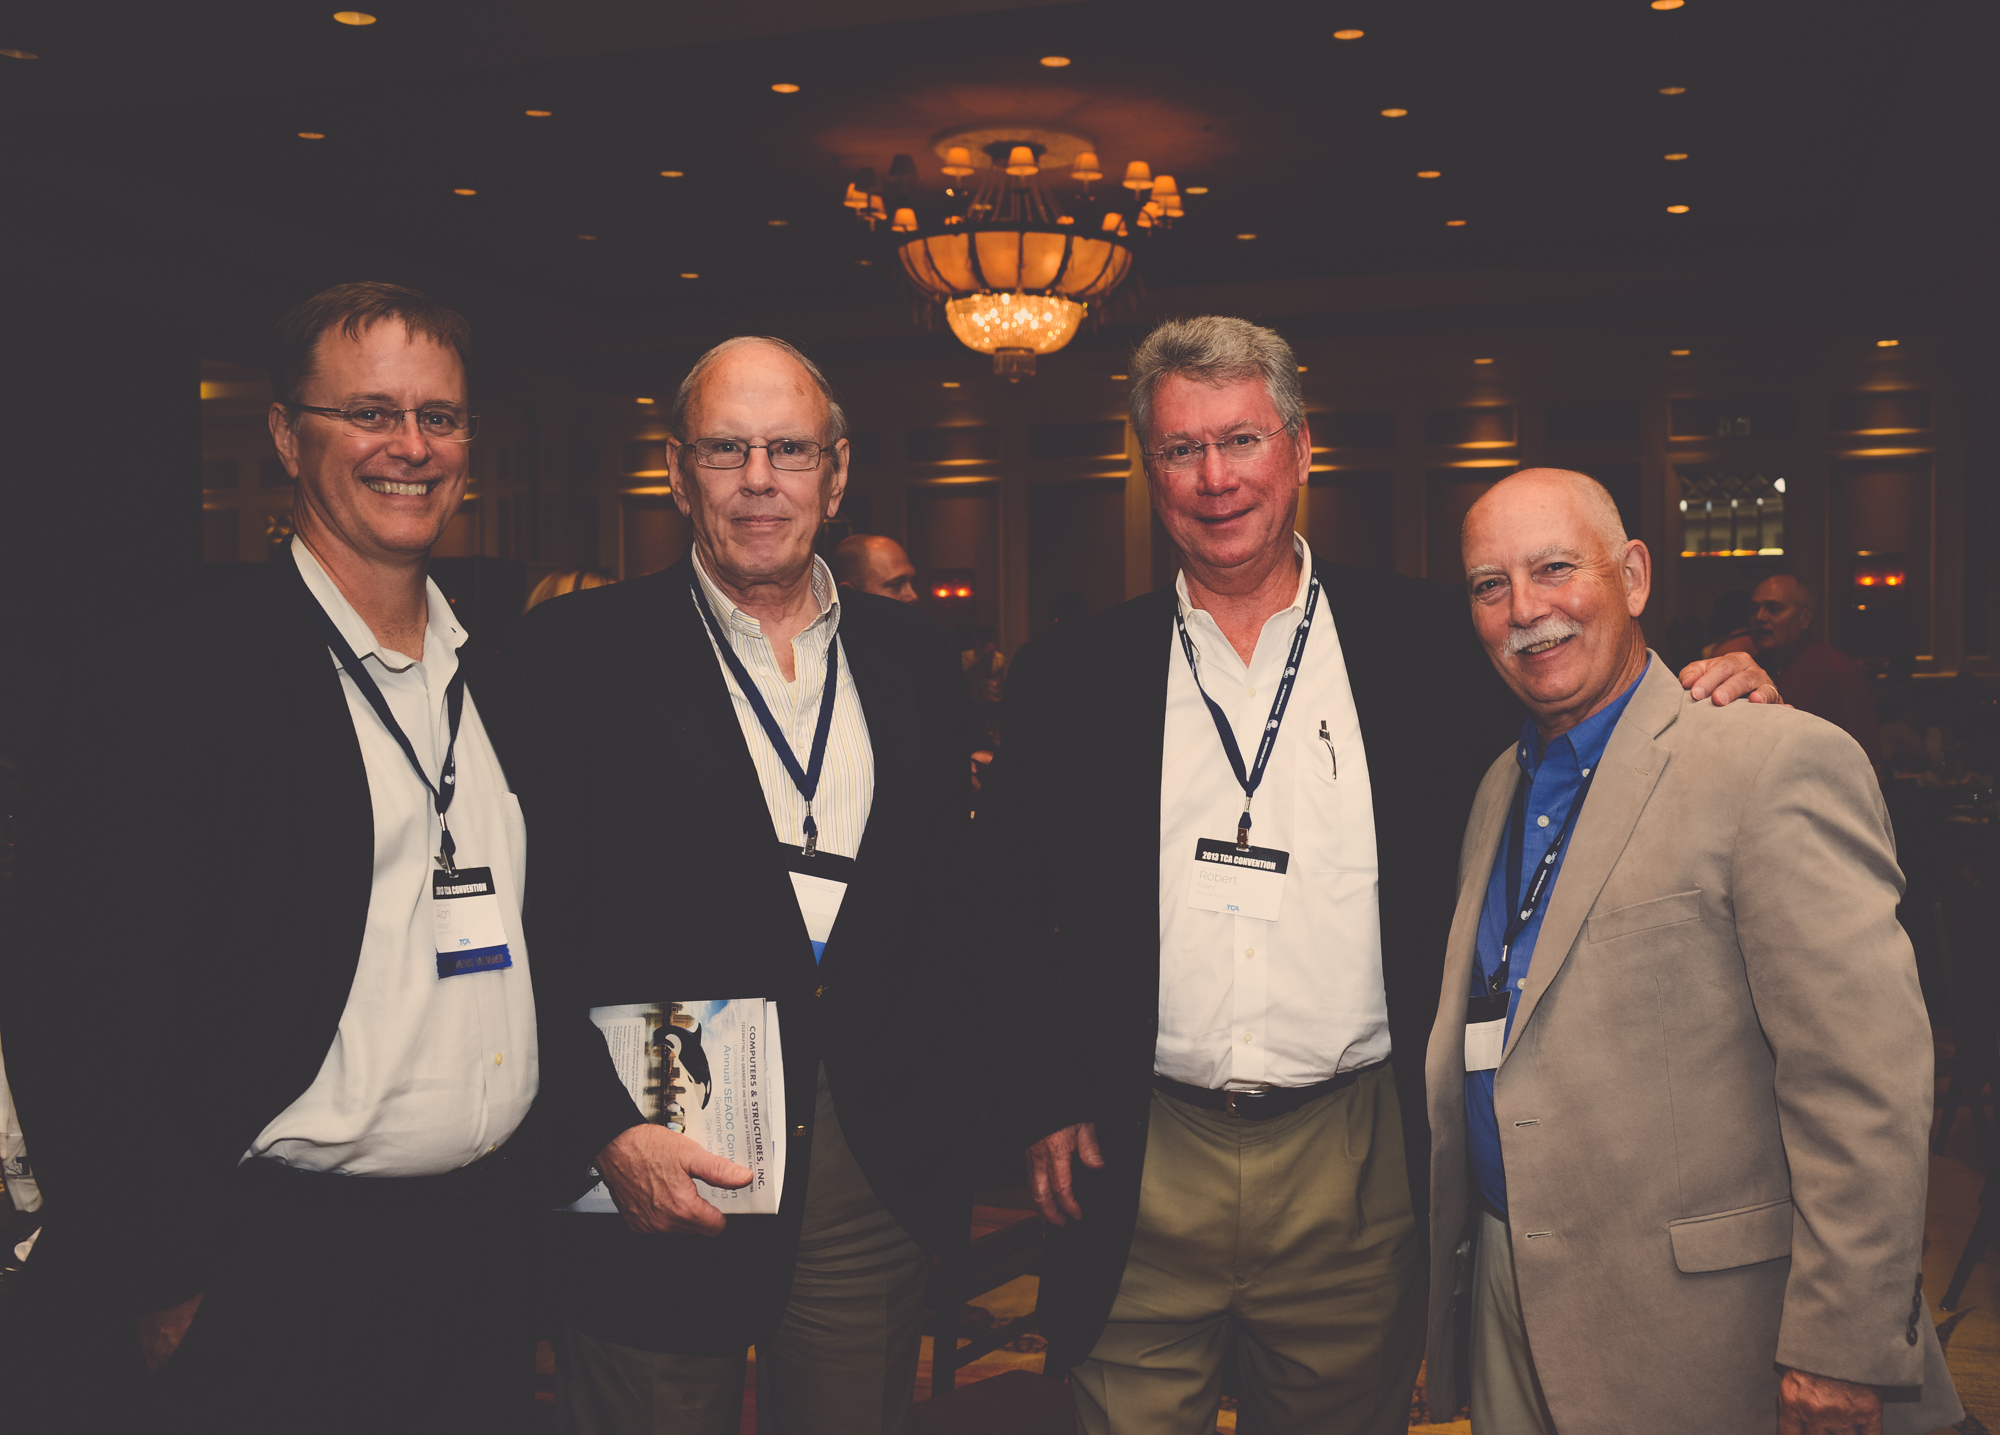 tca selects recipients of professional achievement awards peter courtois memorial award